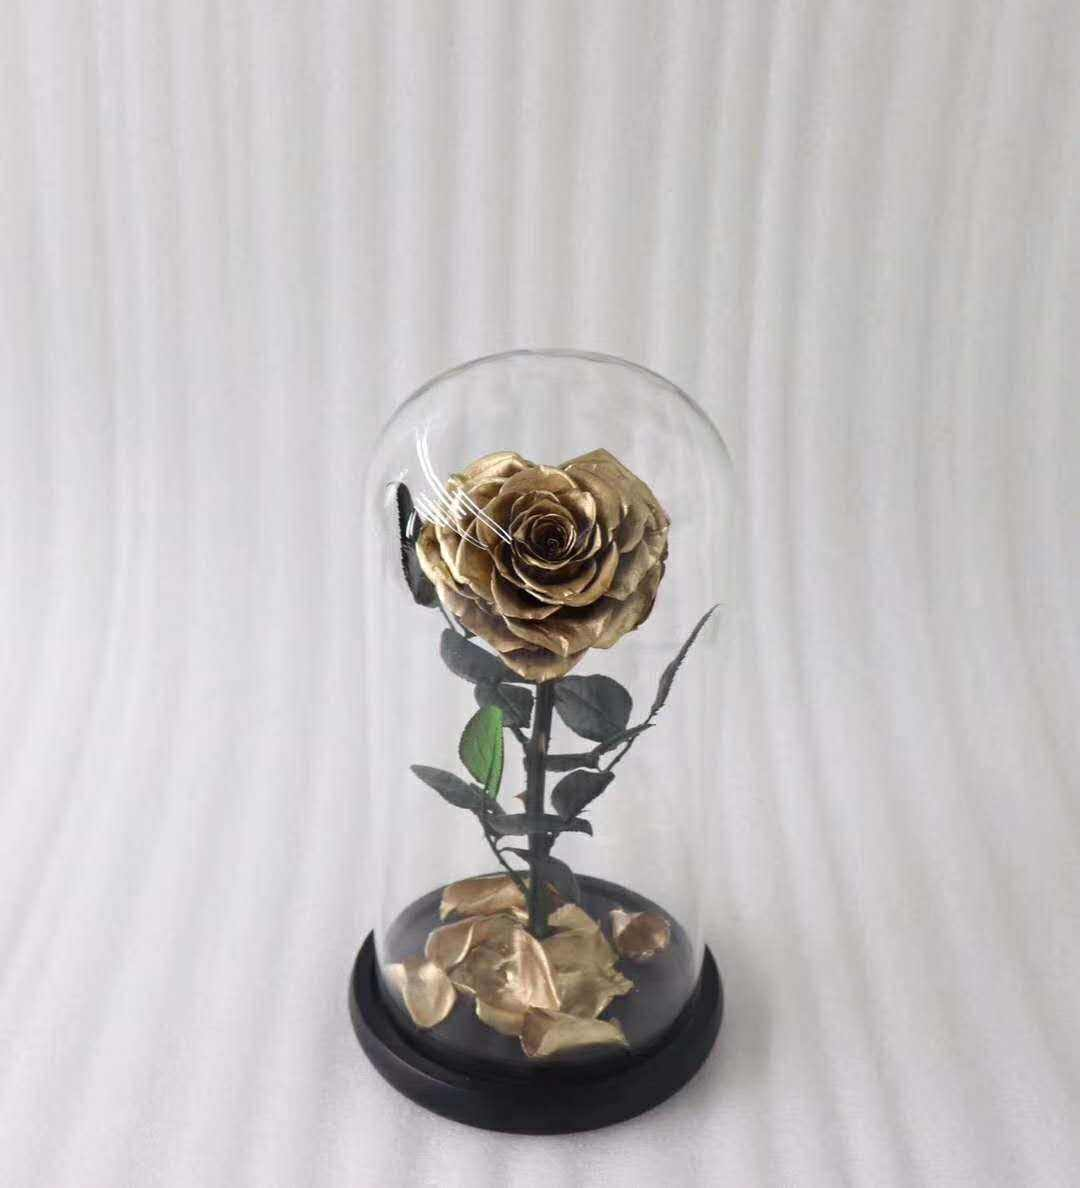 Never fade gold dipped heart shape real preserved gold rose in glass